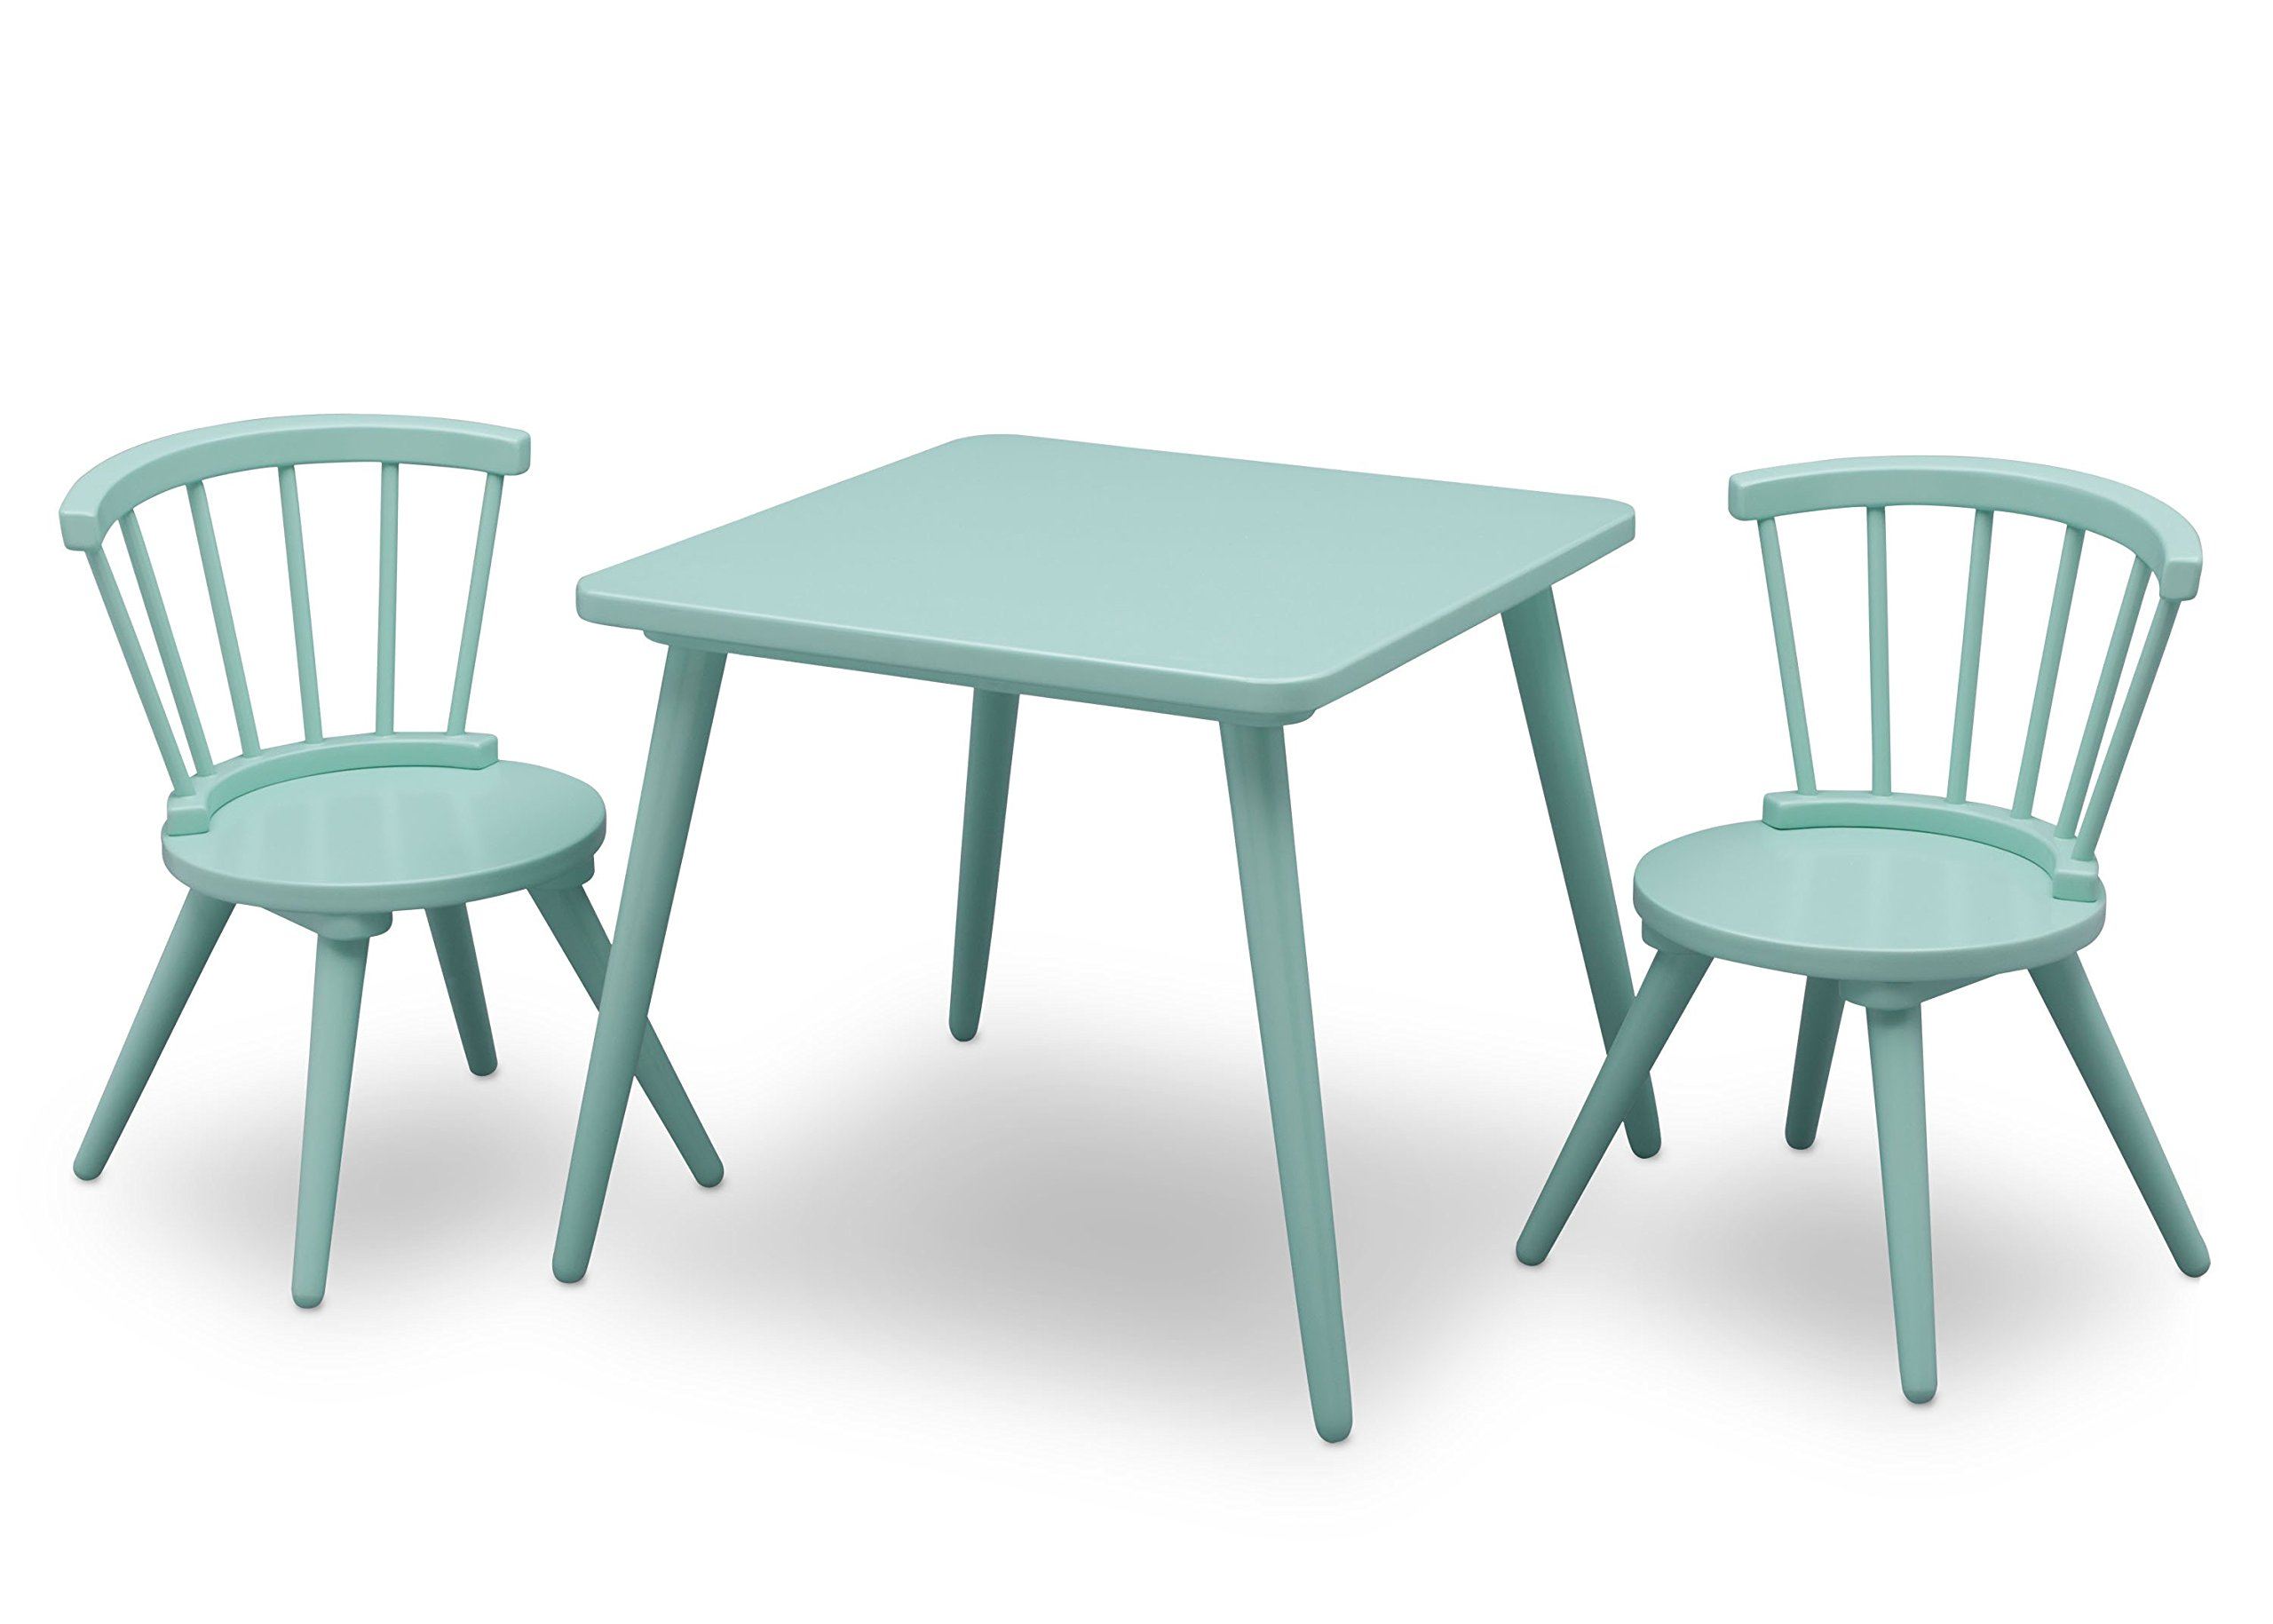 Delta Children Windsor Kids Wood Chair Set and Table (2 Chairs Included), Aqua by Delta Children